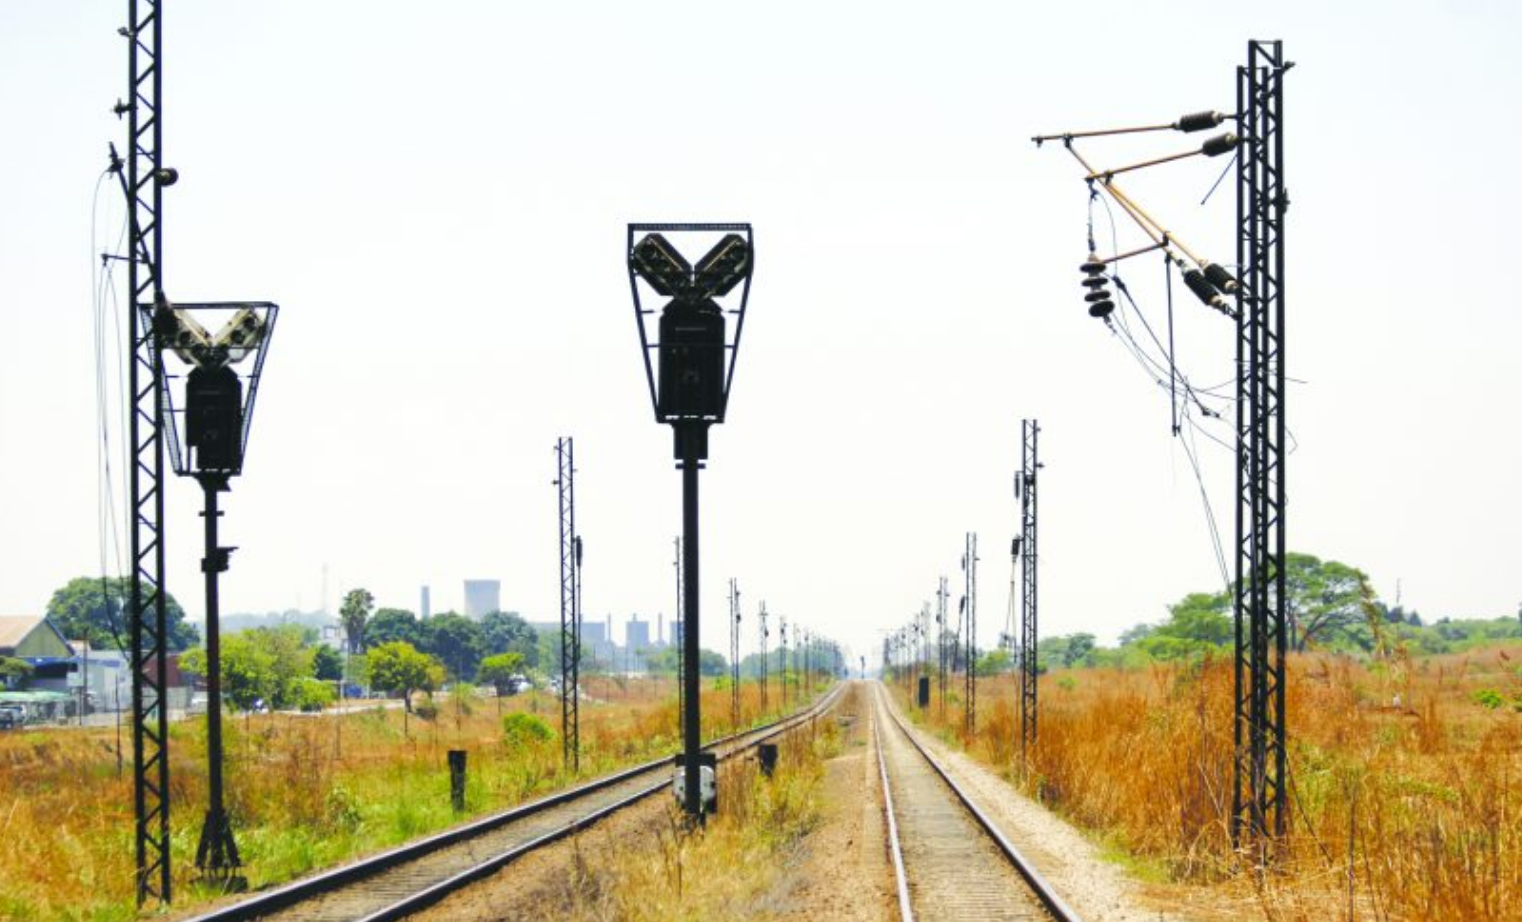 NRZ eyes regional markets for turnaround